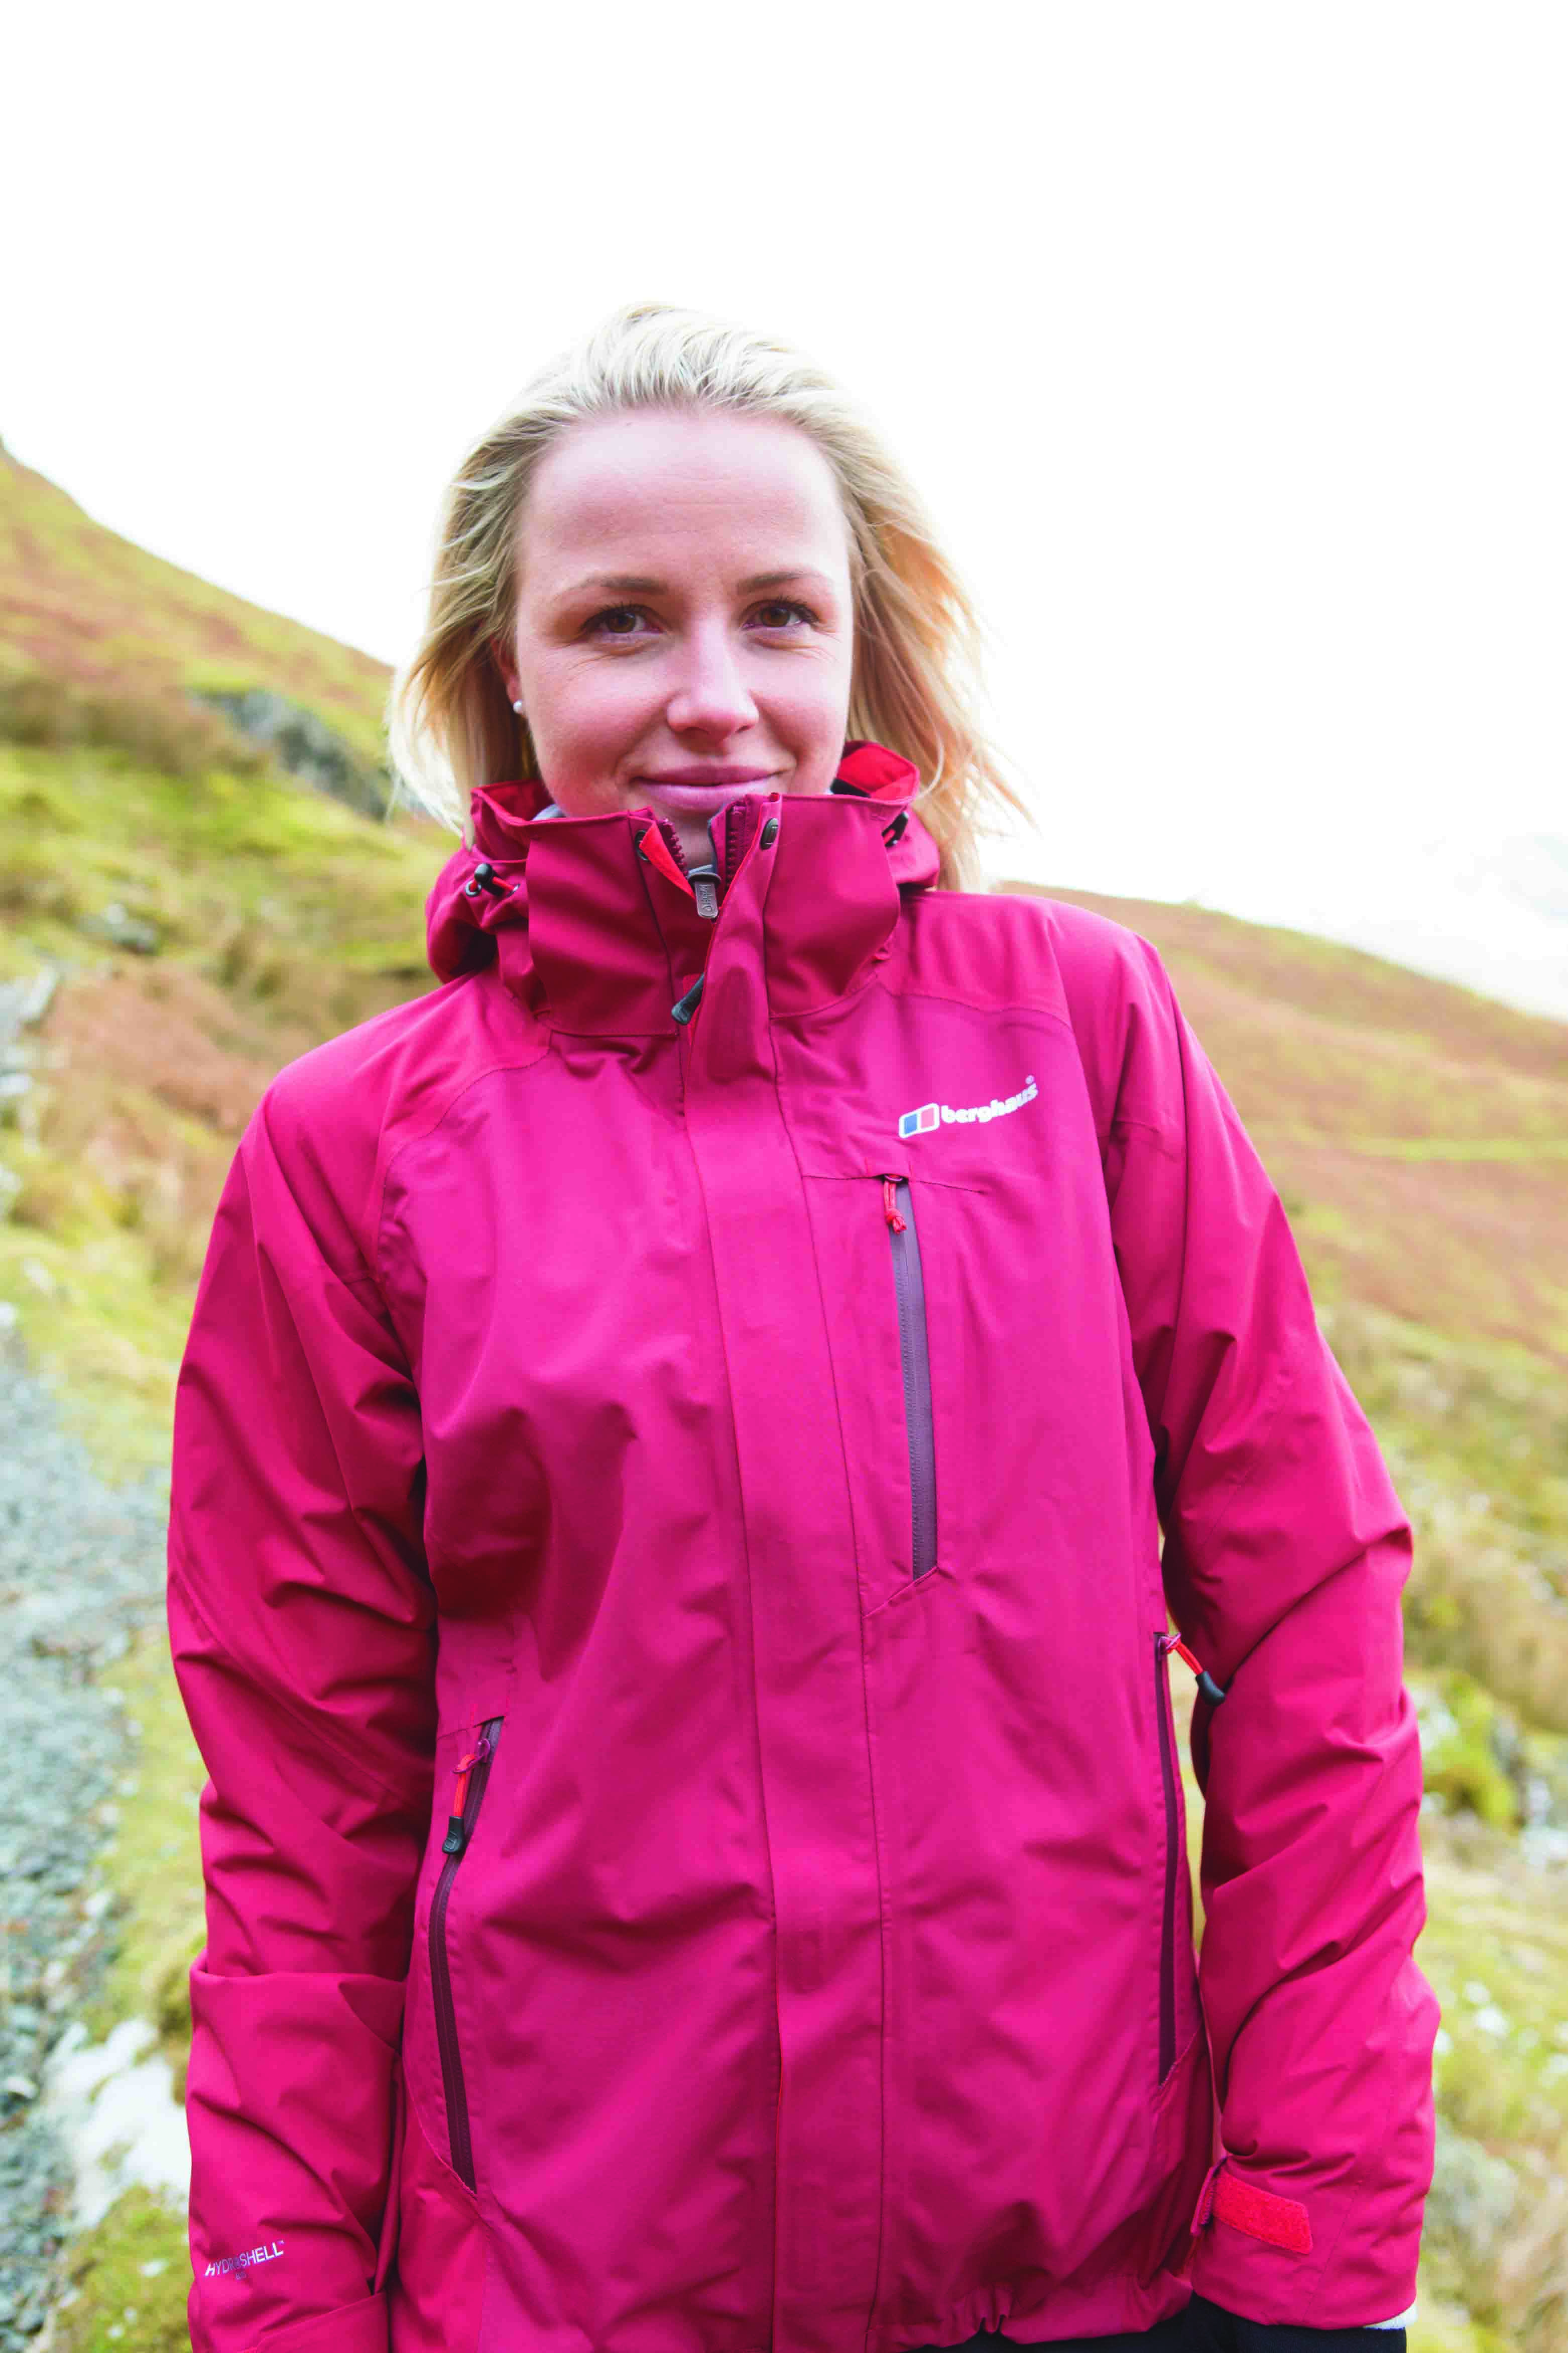 This sleek new shell jacket from Berghaus boasts a host of trail ready features for staying dry and comfortable on demanding hikes. Hydroshell™ Elite fabric provides waterproof protection and exceptional breathability, and the inner lining features Argentium® anti-odour technology to retain freshness even after extended use. Product Code: #178869